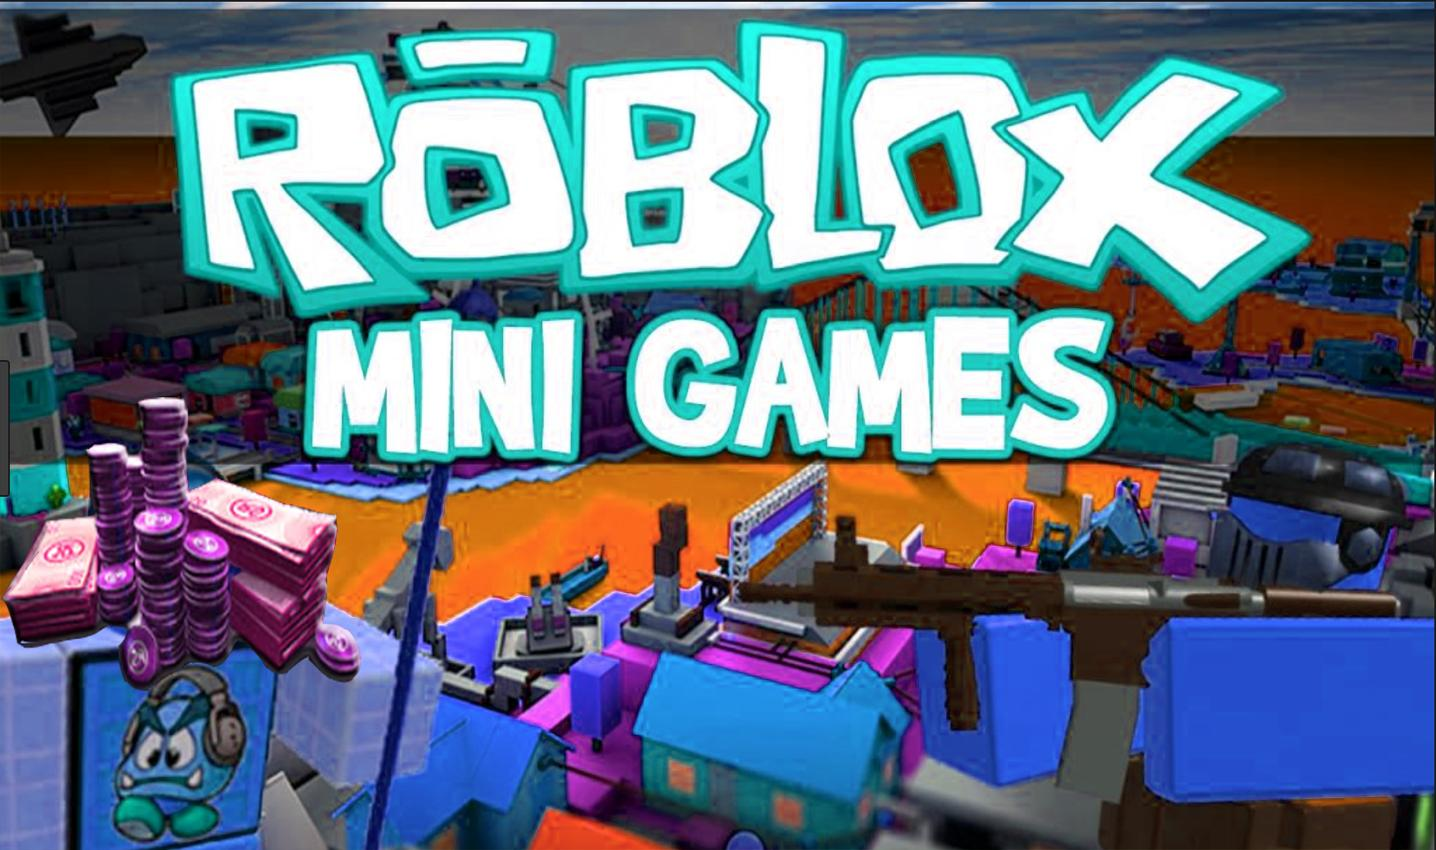 How To Get Free Robux For Roblox 2018 For Android Apk Download